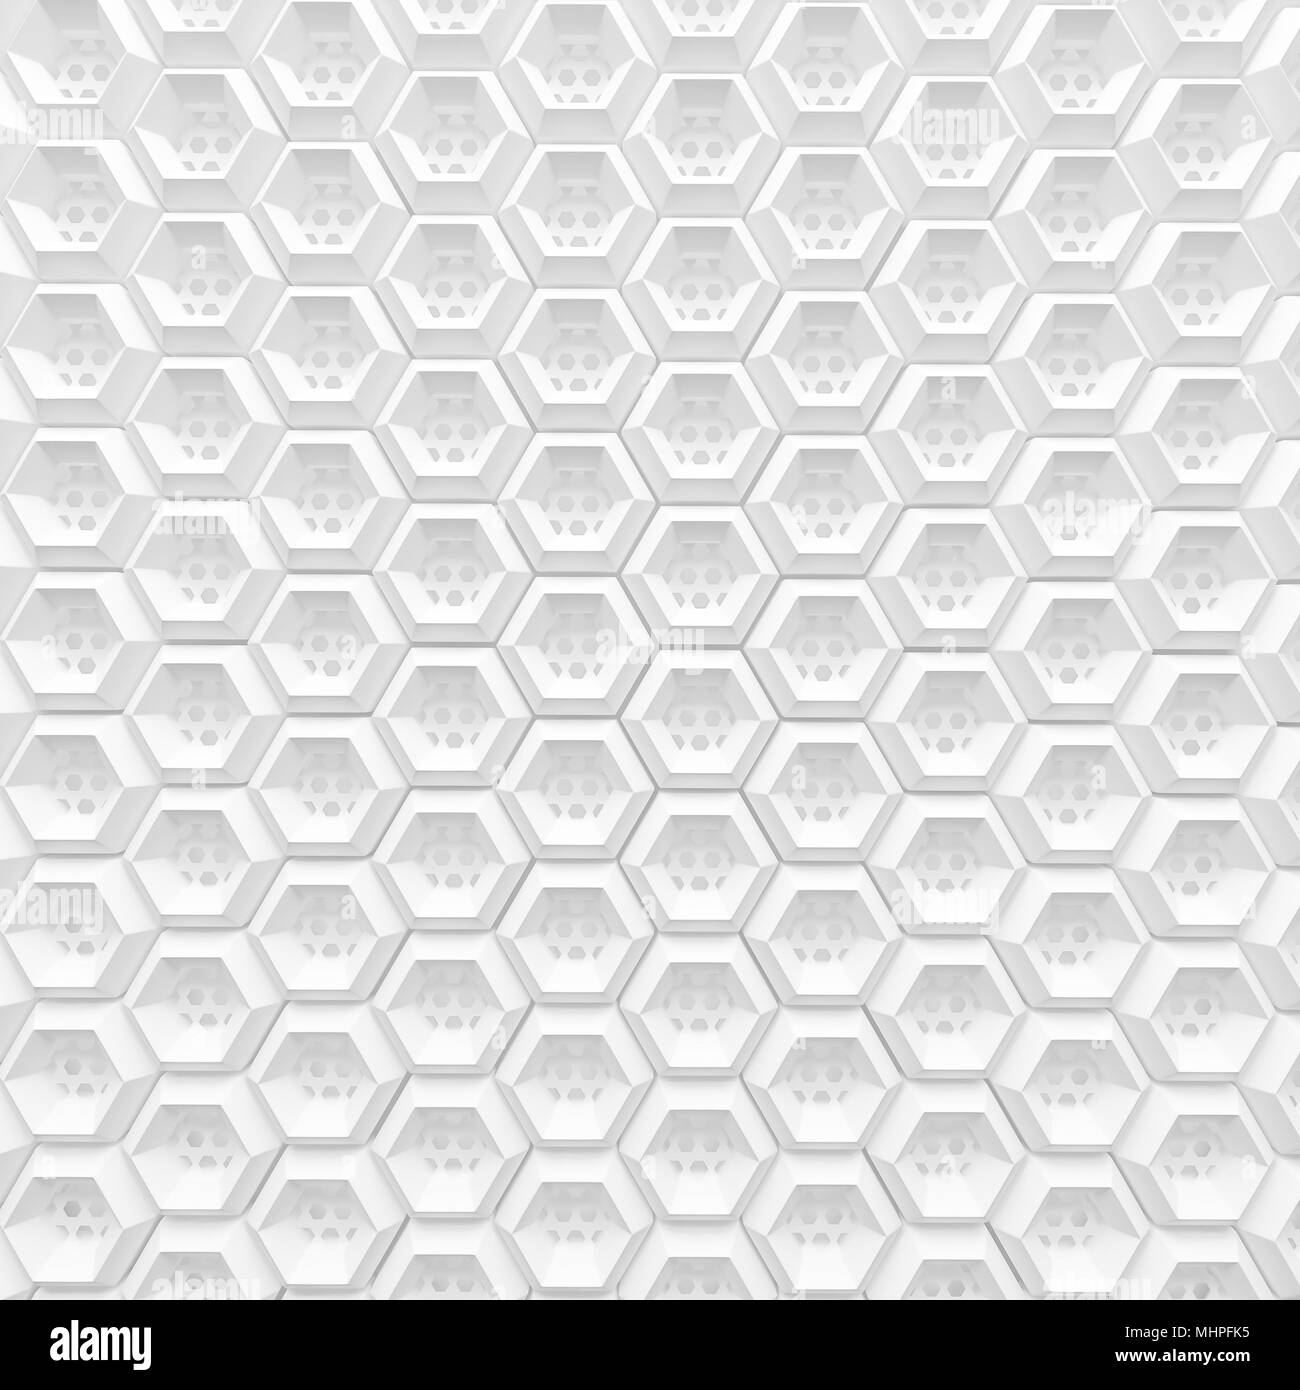 Wire Mesh Black and White Stock Photos & Images - Alamy